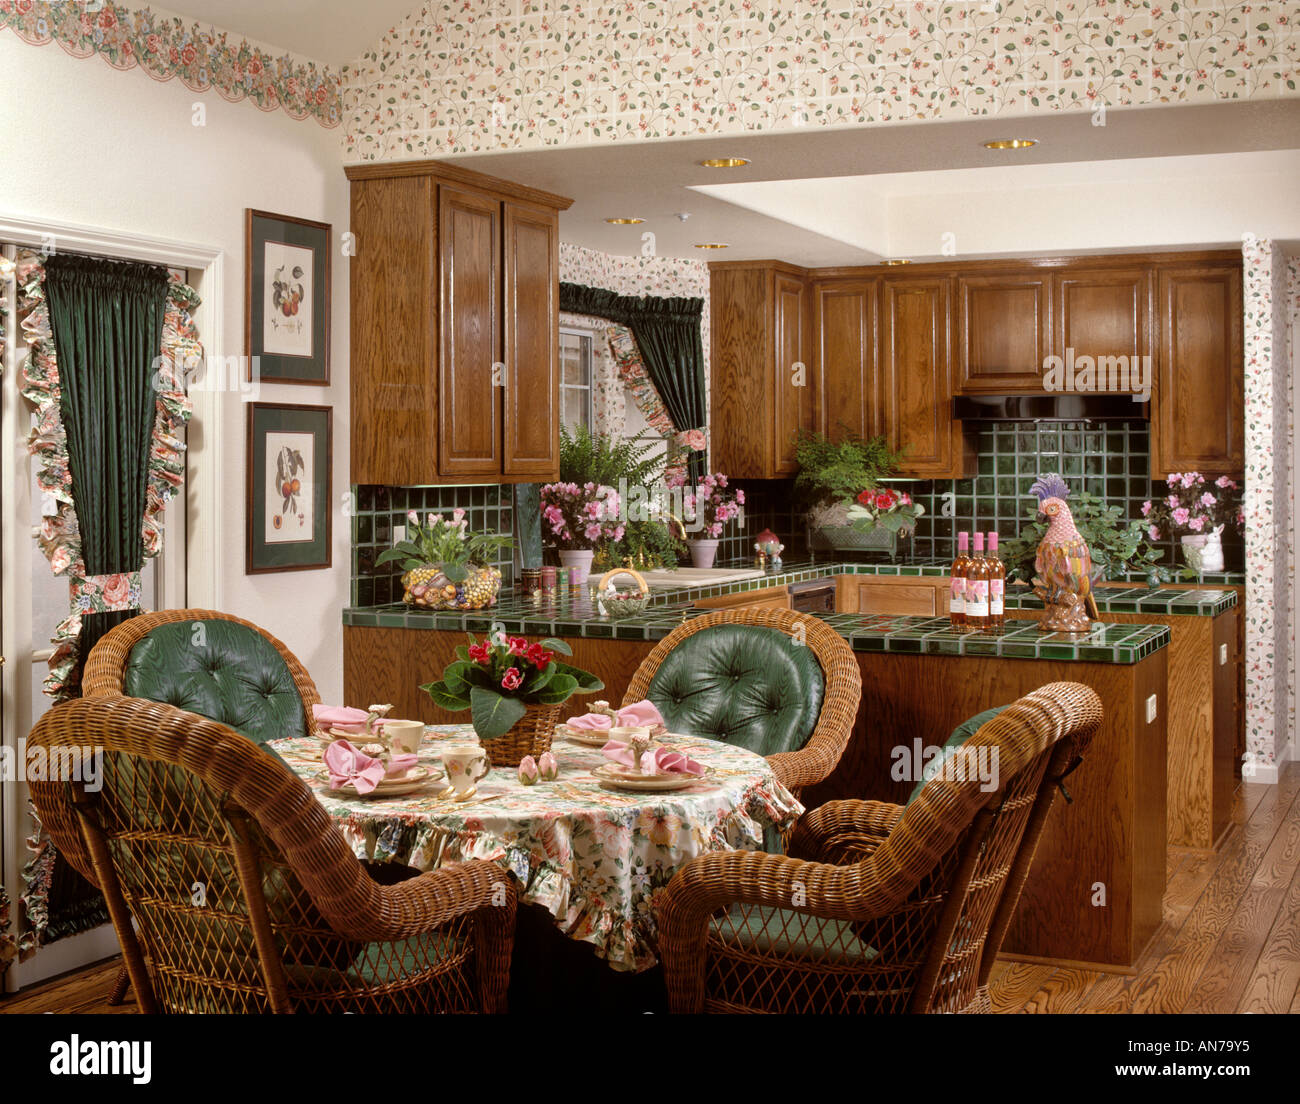 kitchen dining room with wicker chairs green tile and window treatments AN79Y5